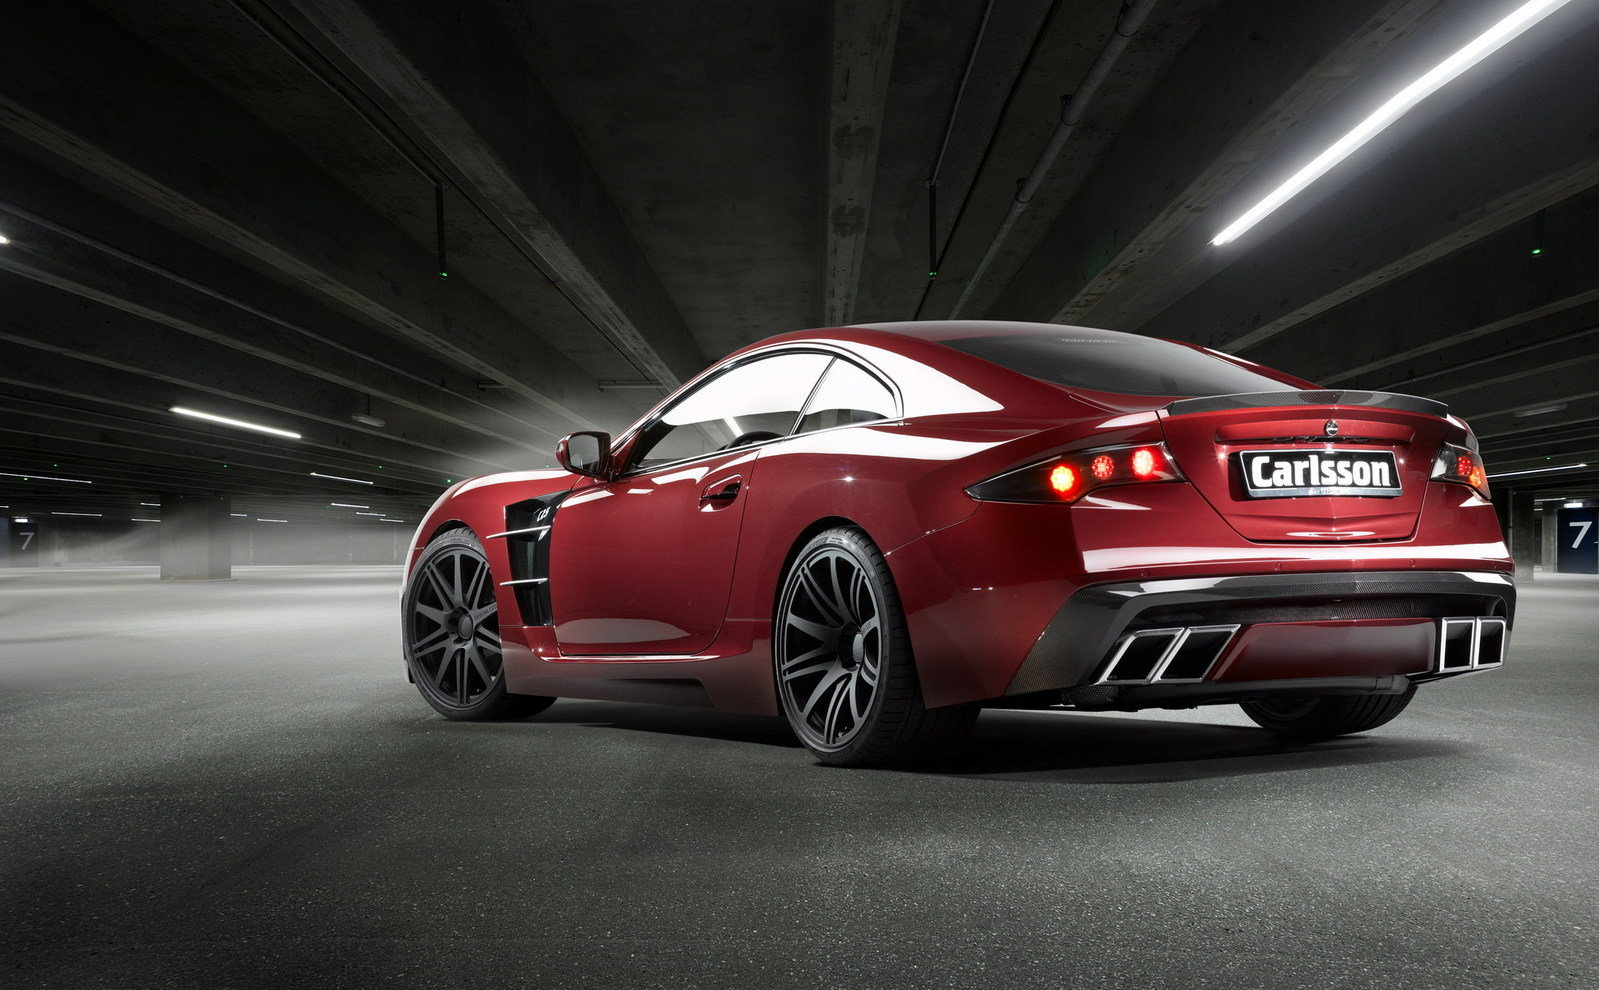 http://pictures.topspeed.com/IMG/crop/201206/carlsson-c25-china-l-1_1600x0w.jpg